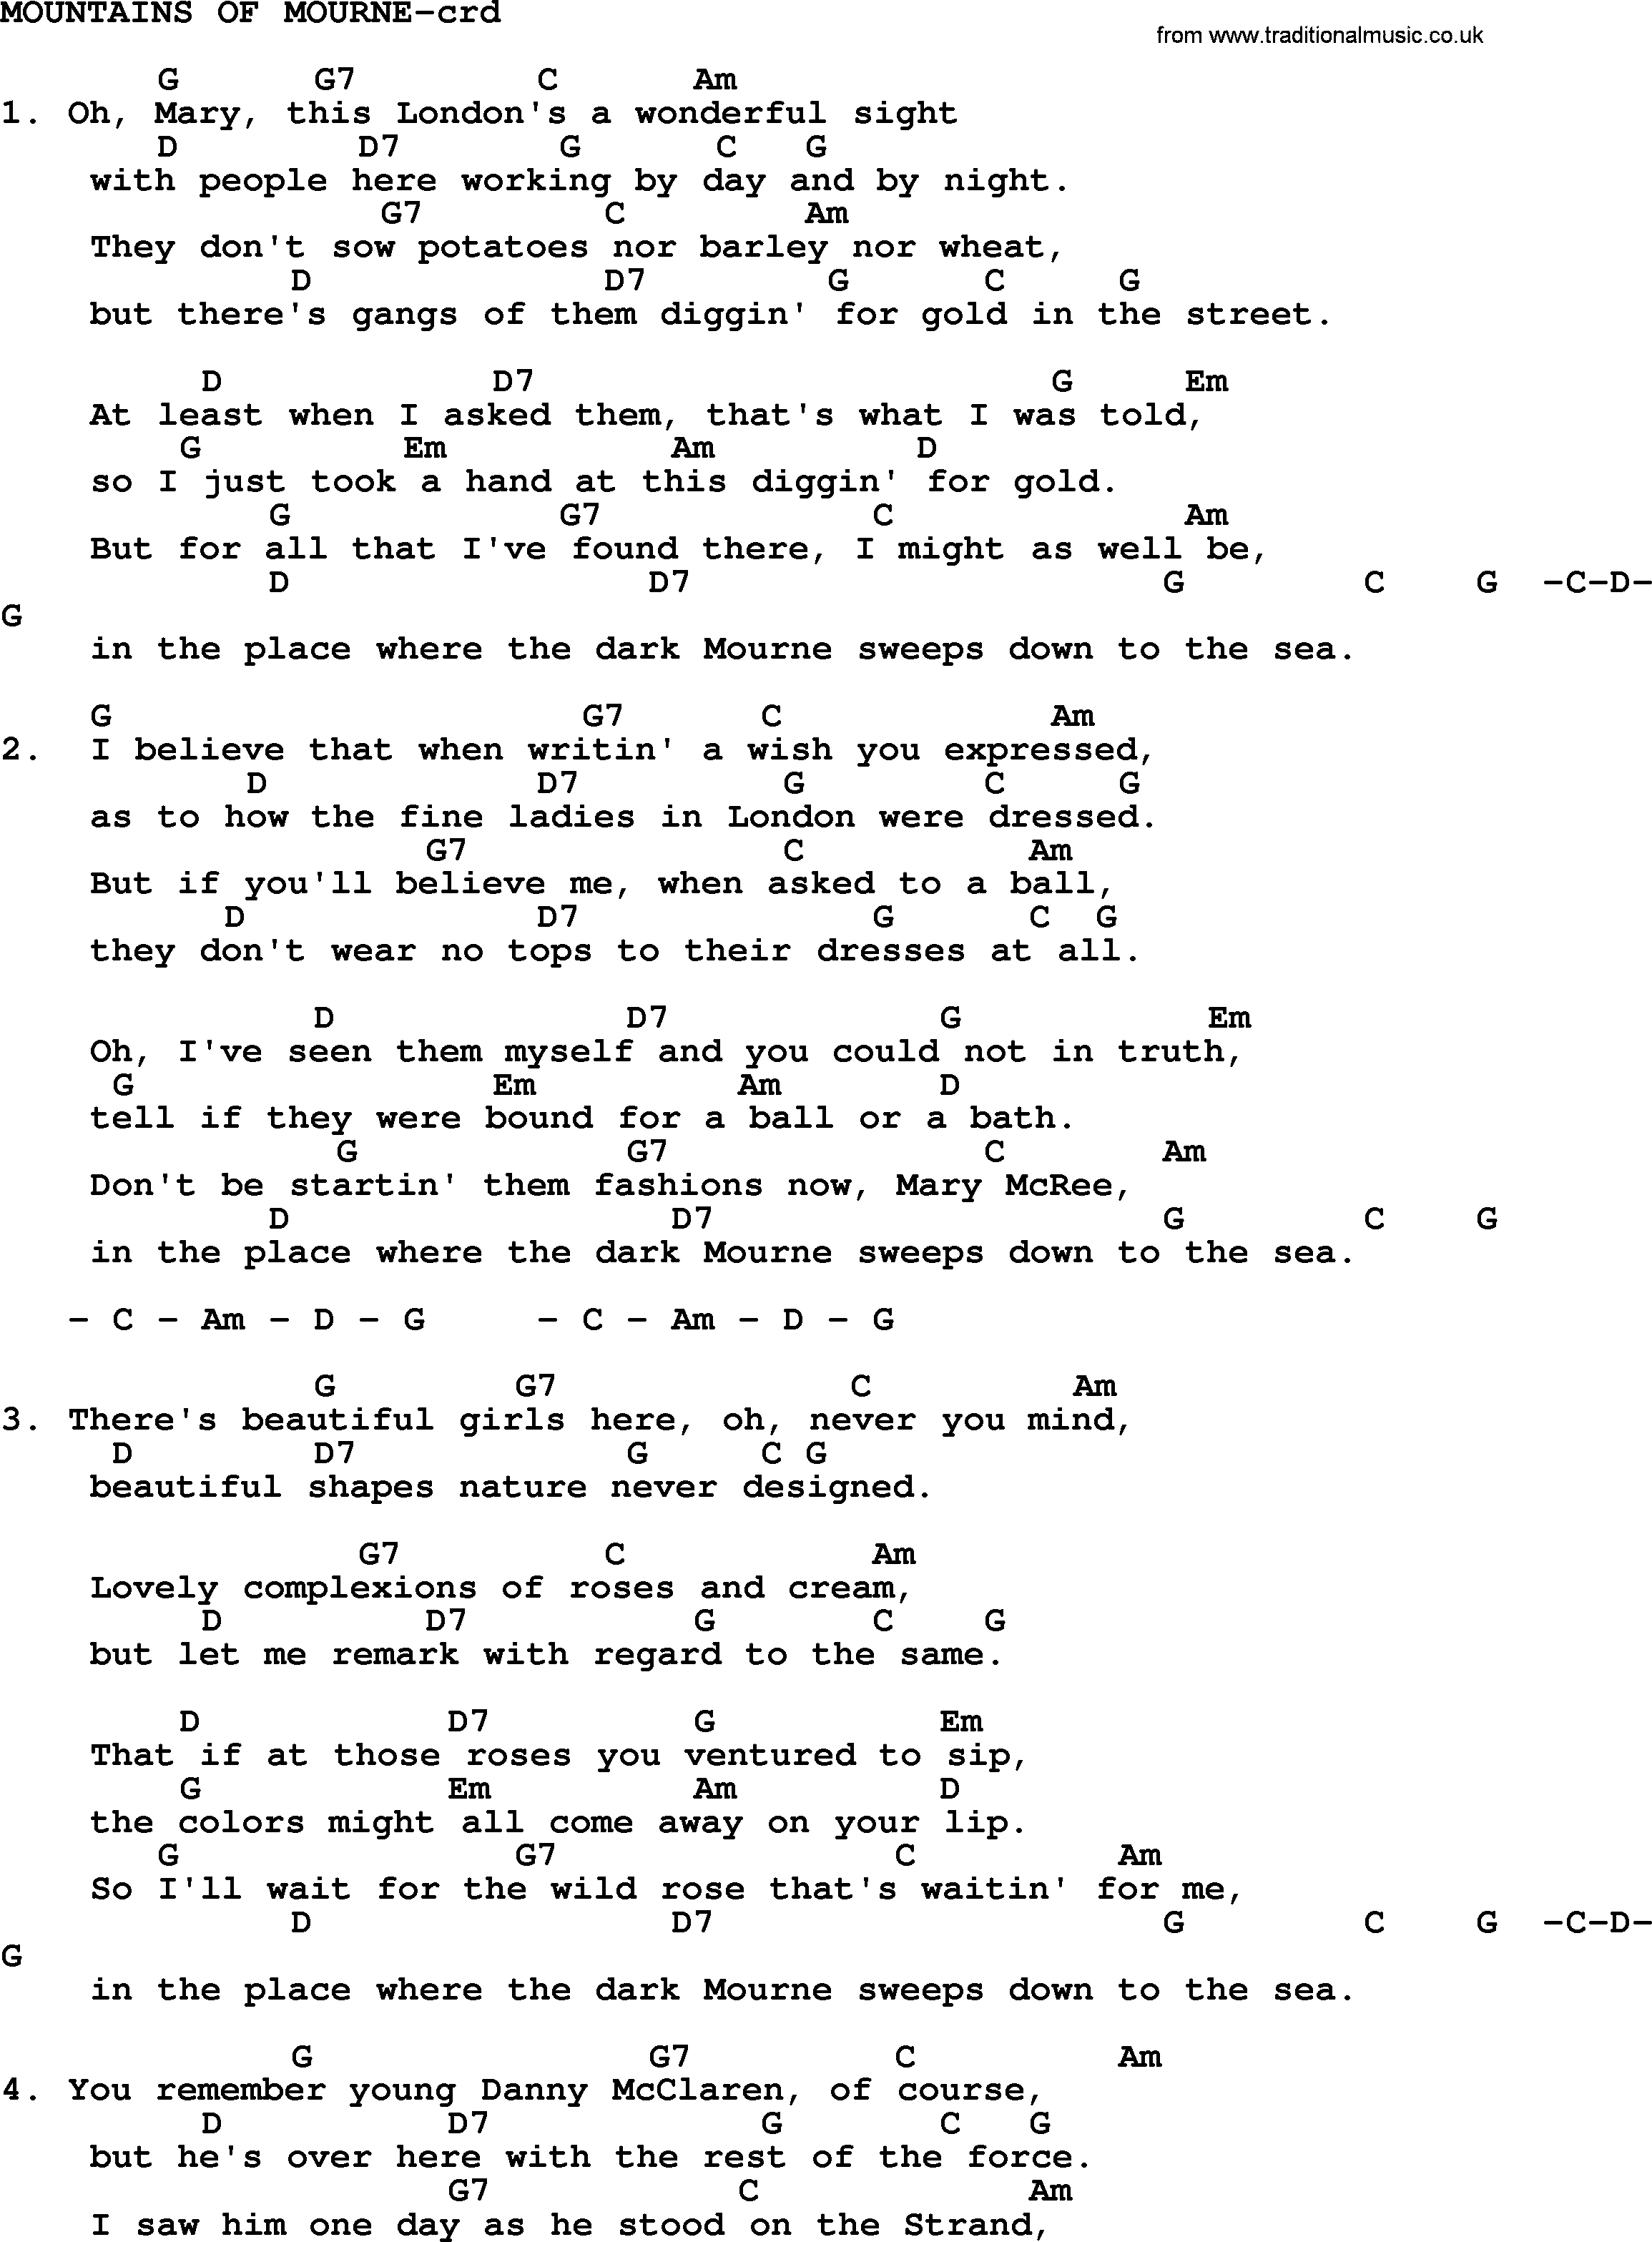 Kingston trio song mountains of mourne lyrics and chords kingston trio song mountains of mourne lyrics and chords hexwebz Images